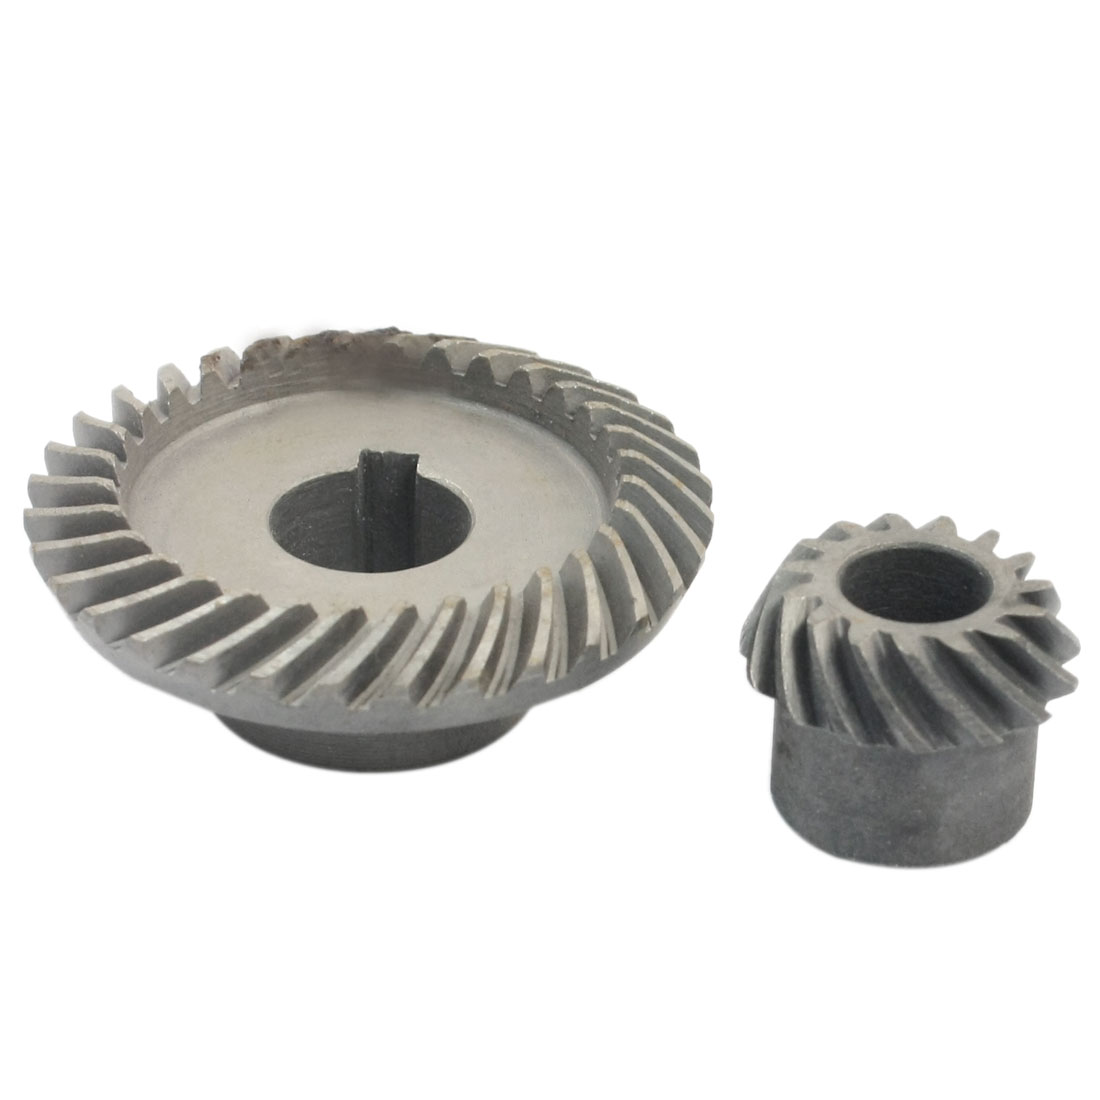 Replacement Metal Spiral Bevel Gear Set for Bosch GWS6-125 Angle Grinder